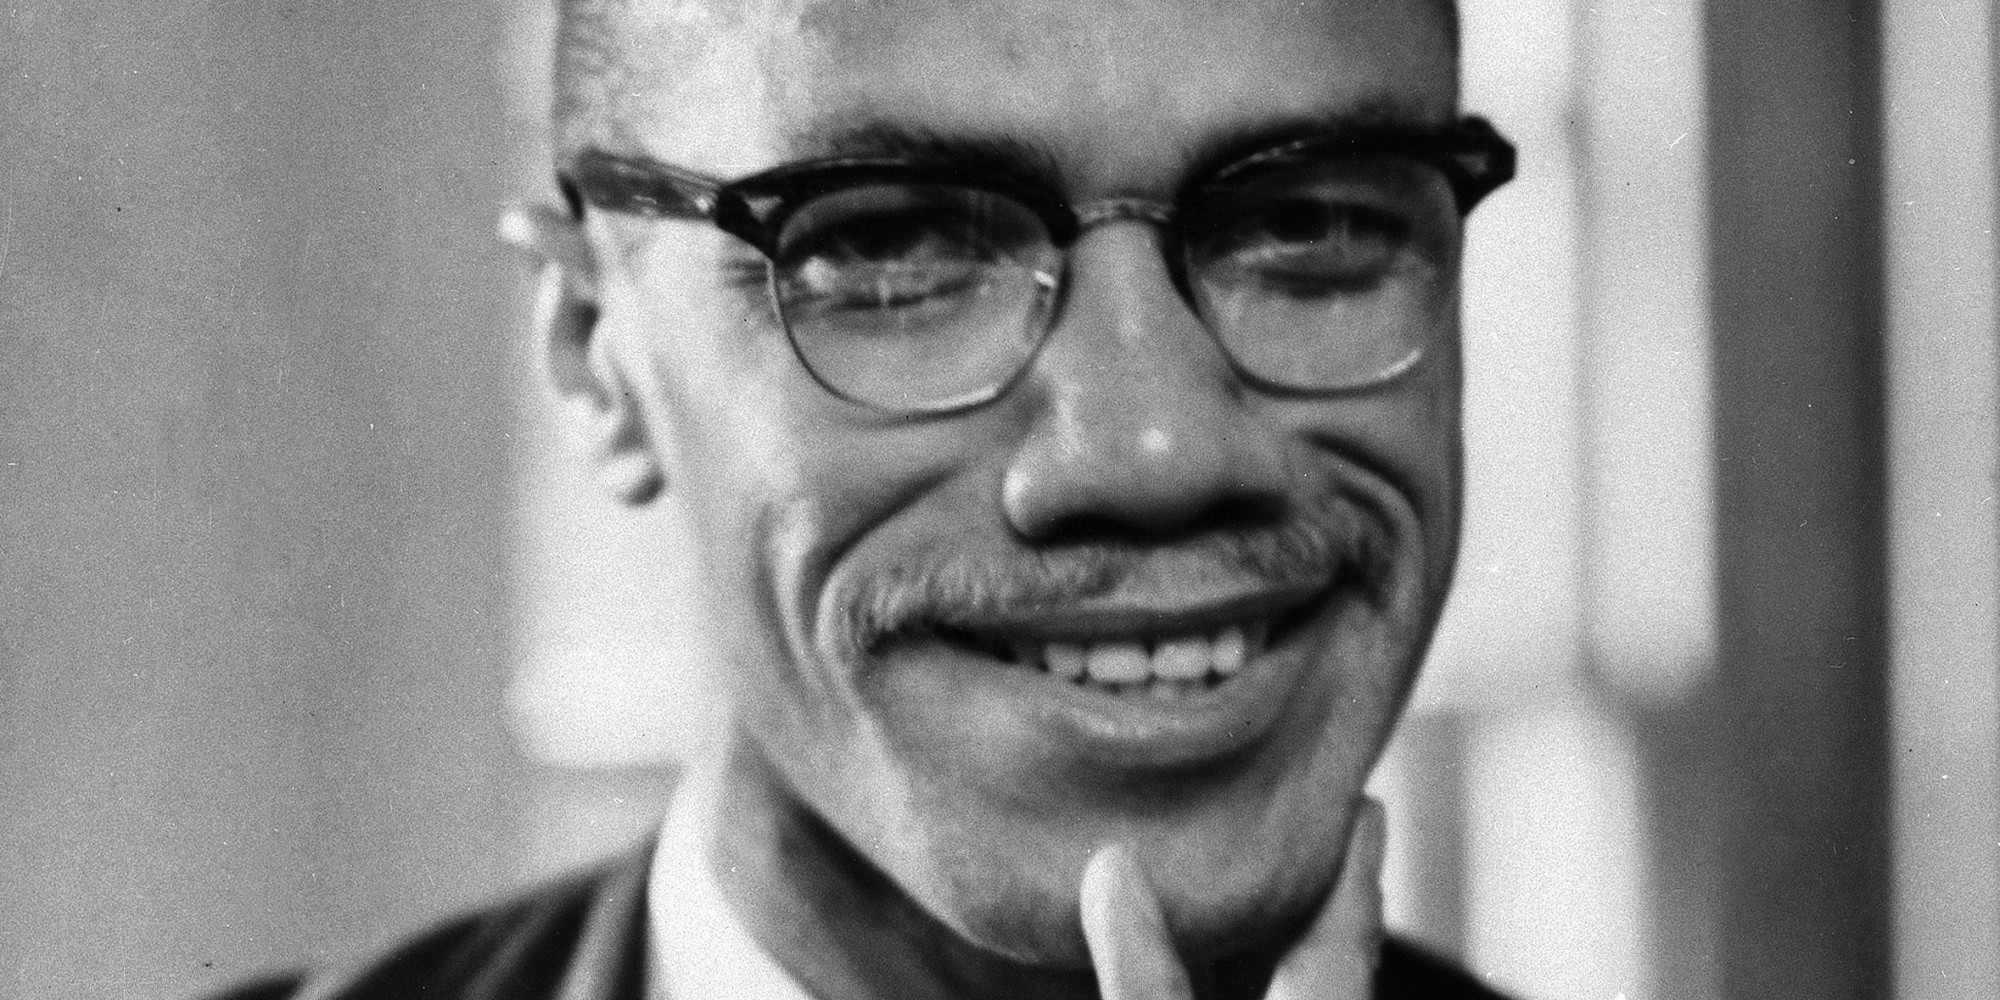 the story of malcolm x The night malcolm x spoke at the oxford union: a transatlantic story of antiracist protest by stephen tuck, henry louis gates, (p 15), november 20, 2014 736 copy quote the only thing power respects, is power.